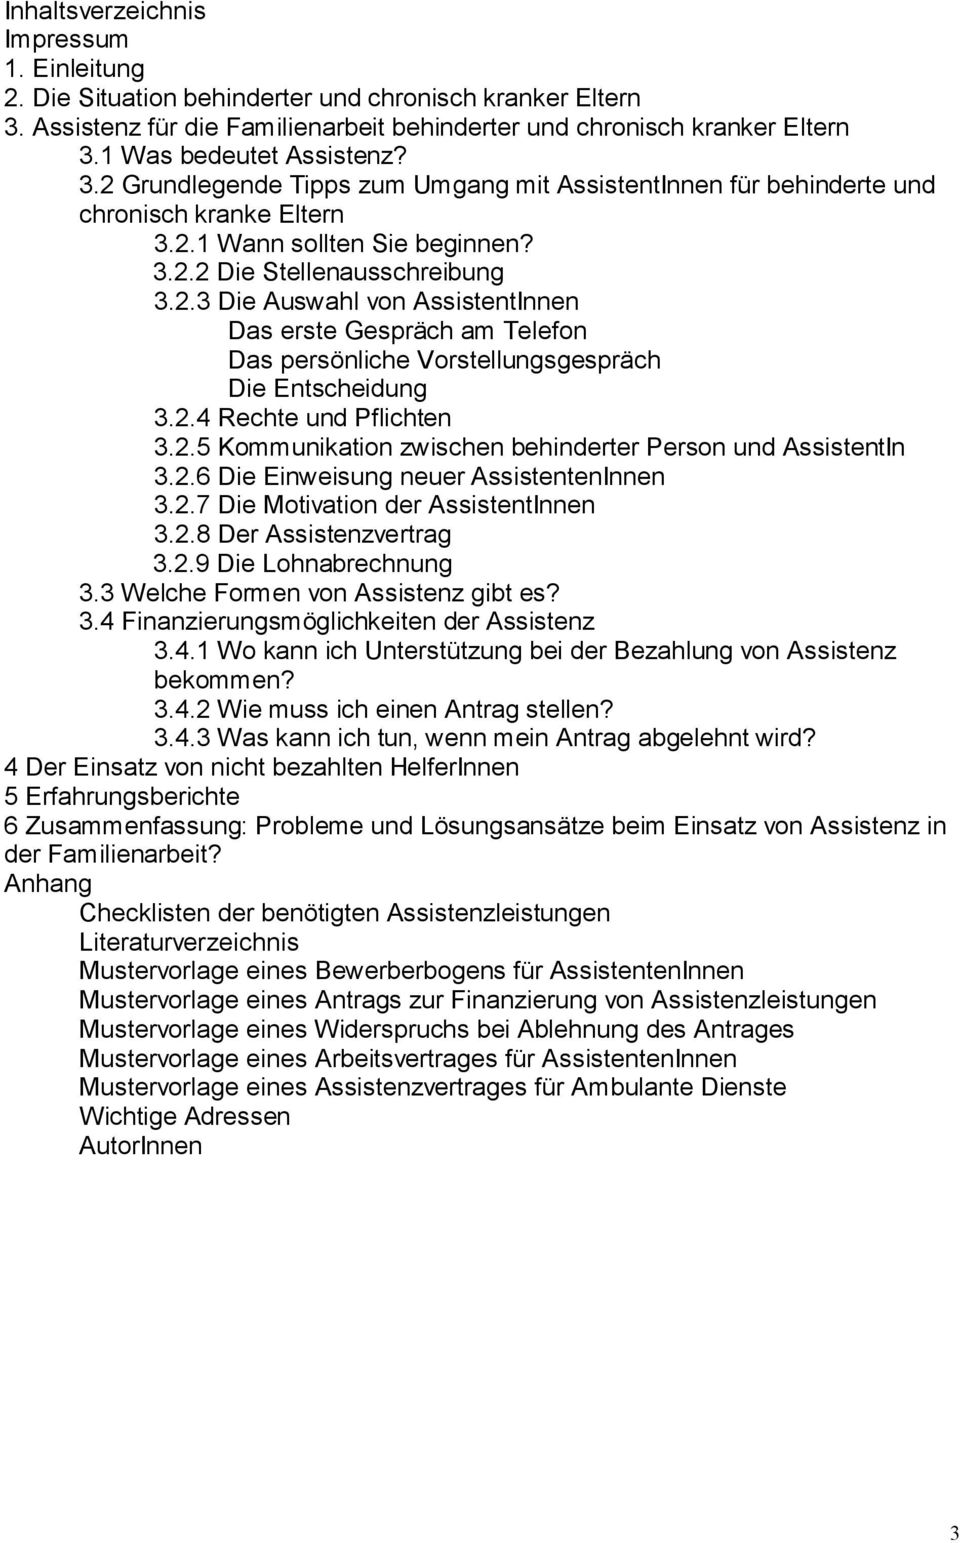 2.4 Rechte und Pflichten 3.2.5 Kommunikation zwischen behinderter Person und AssistentIn 3.2.6 Die Einweisung neuer AssistentenInnen 3.2.7 Die Motivation der AssistentInnen 3.2.8 Der Assistenzvertrag 3.